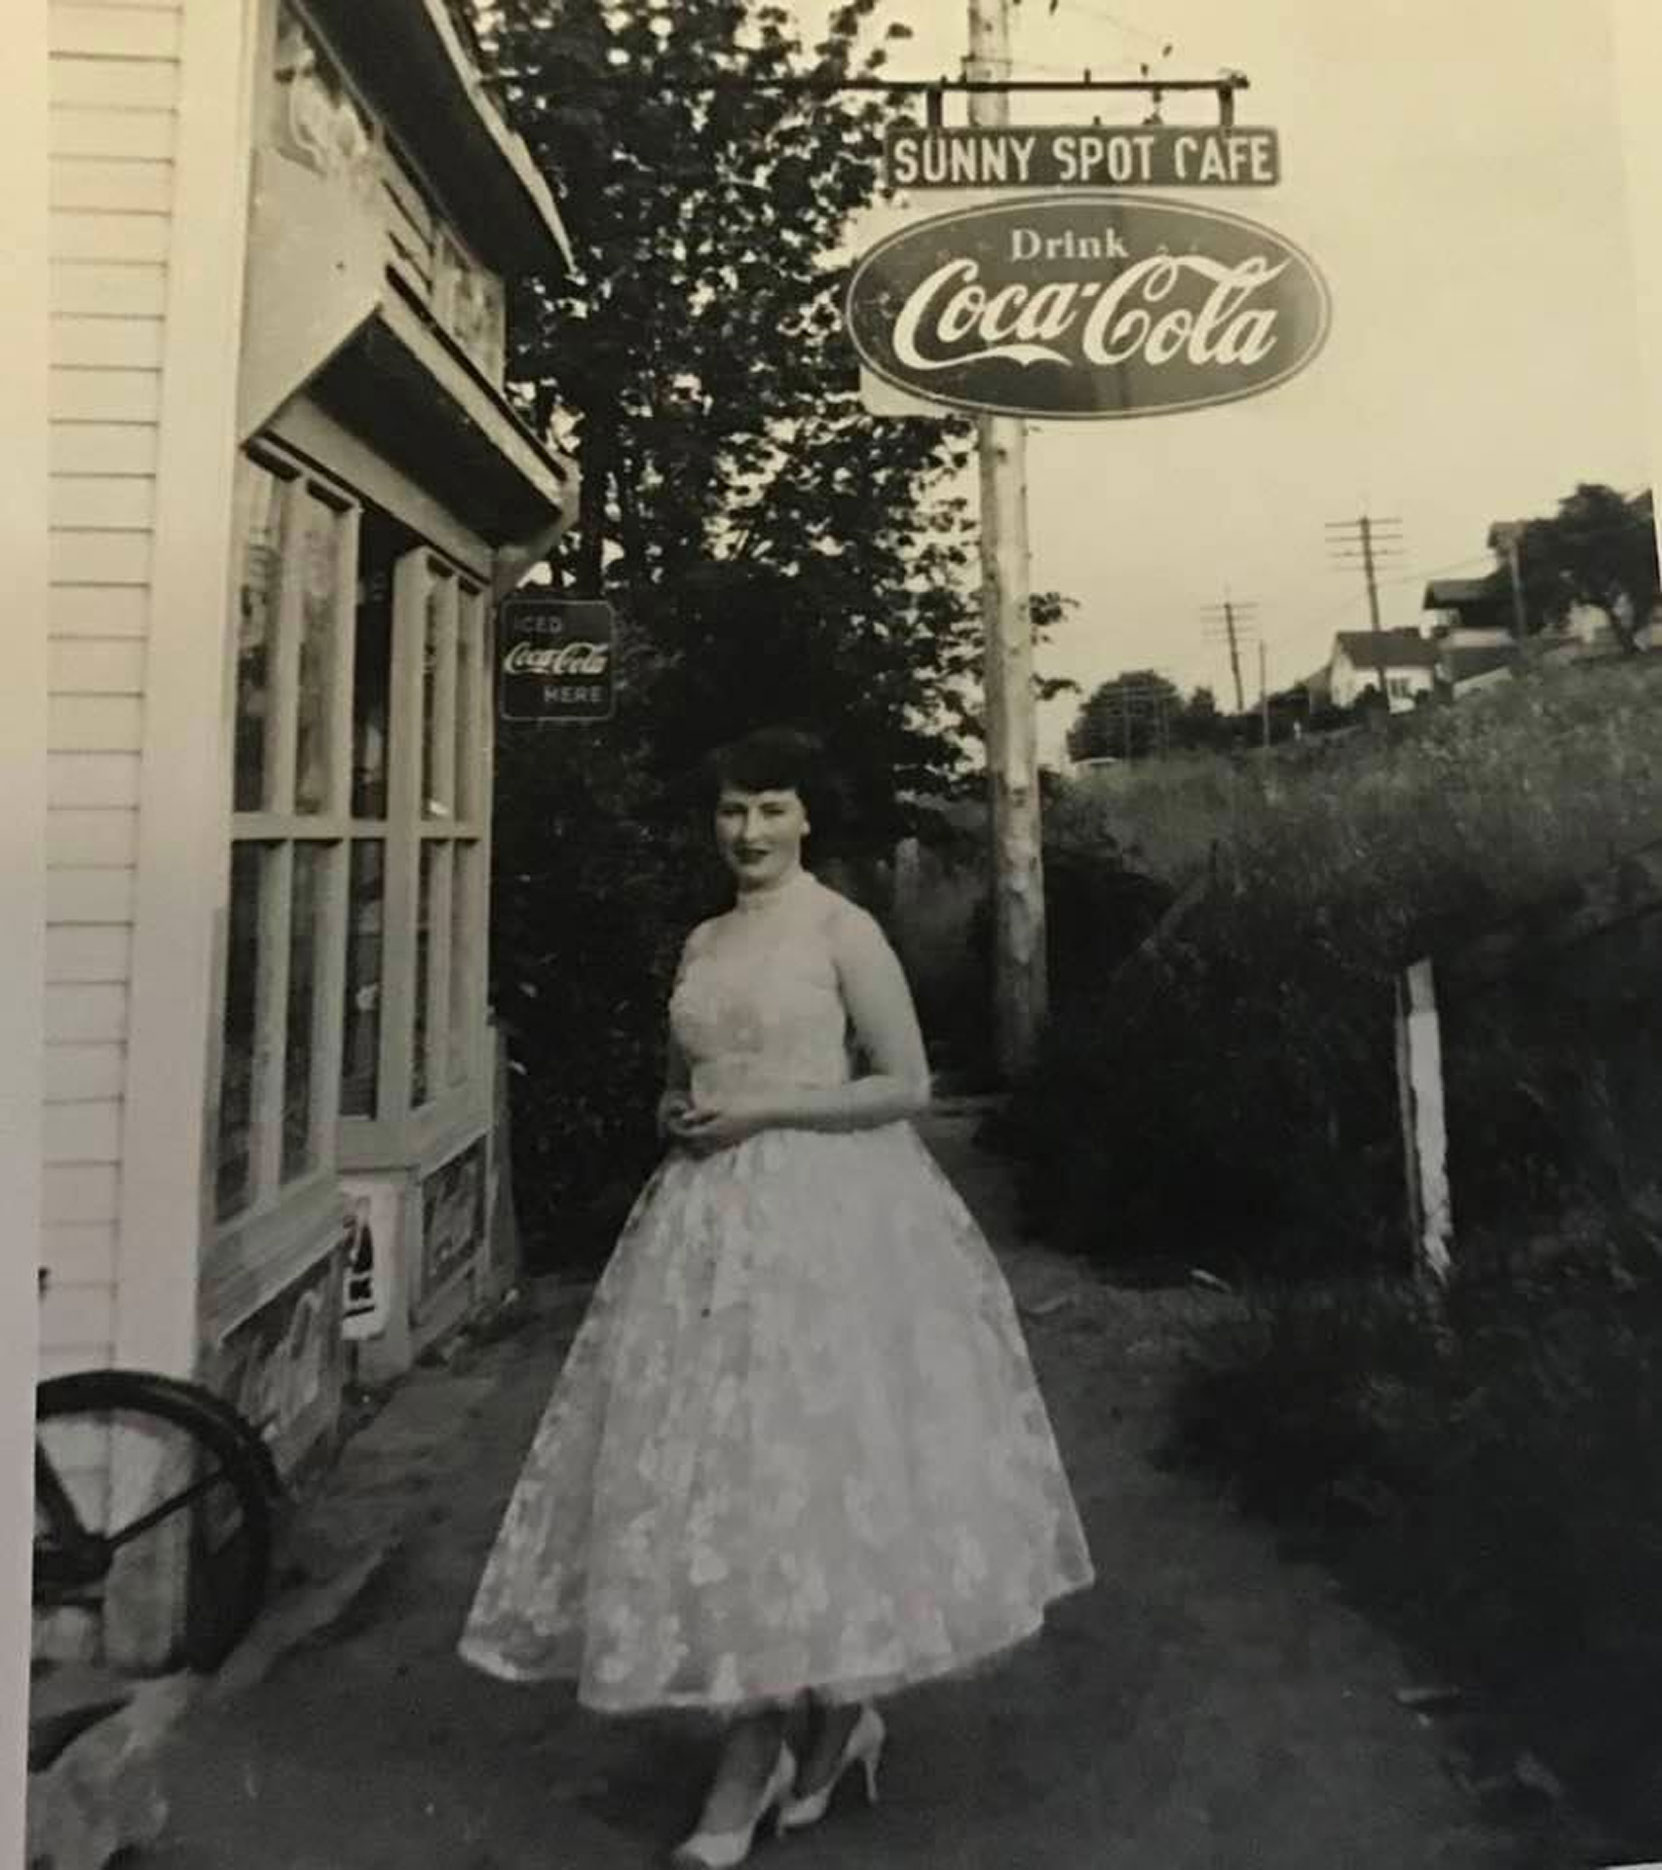 Maralyn McKendrick, who lived at 321 1st Avenue, in front of the Sunny Spot Cafe, 317 1st Avenue, 1957. (photo: Hilary Hansen, family photo - used with permission)